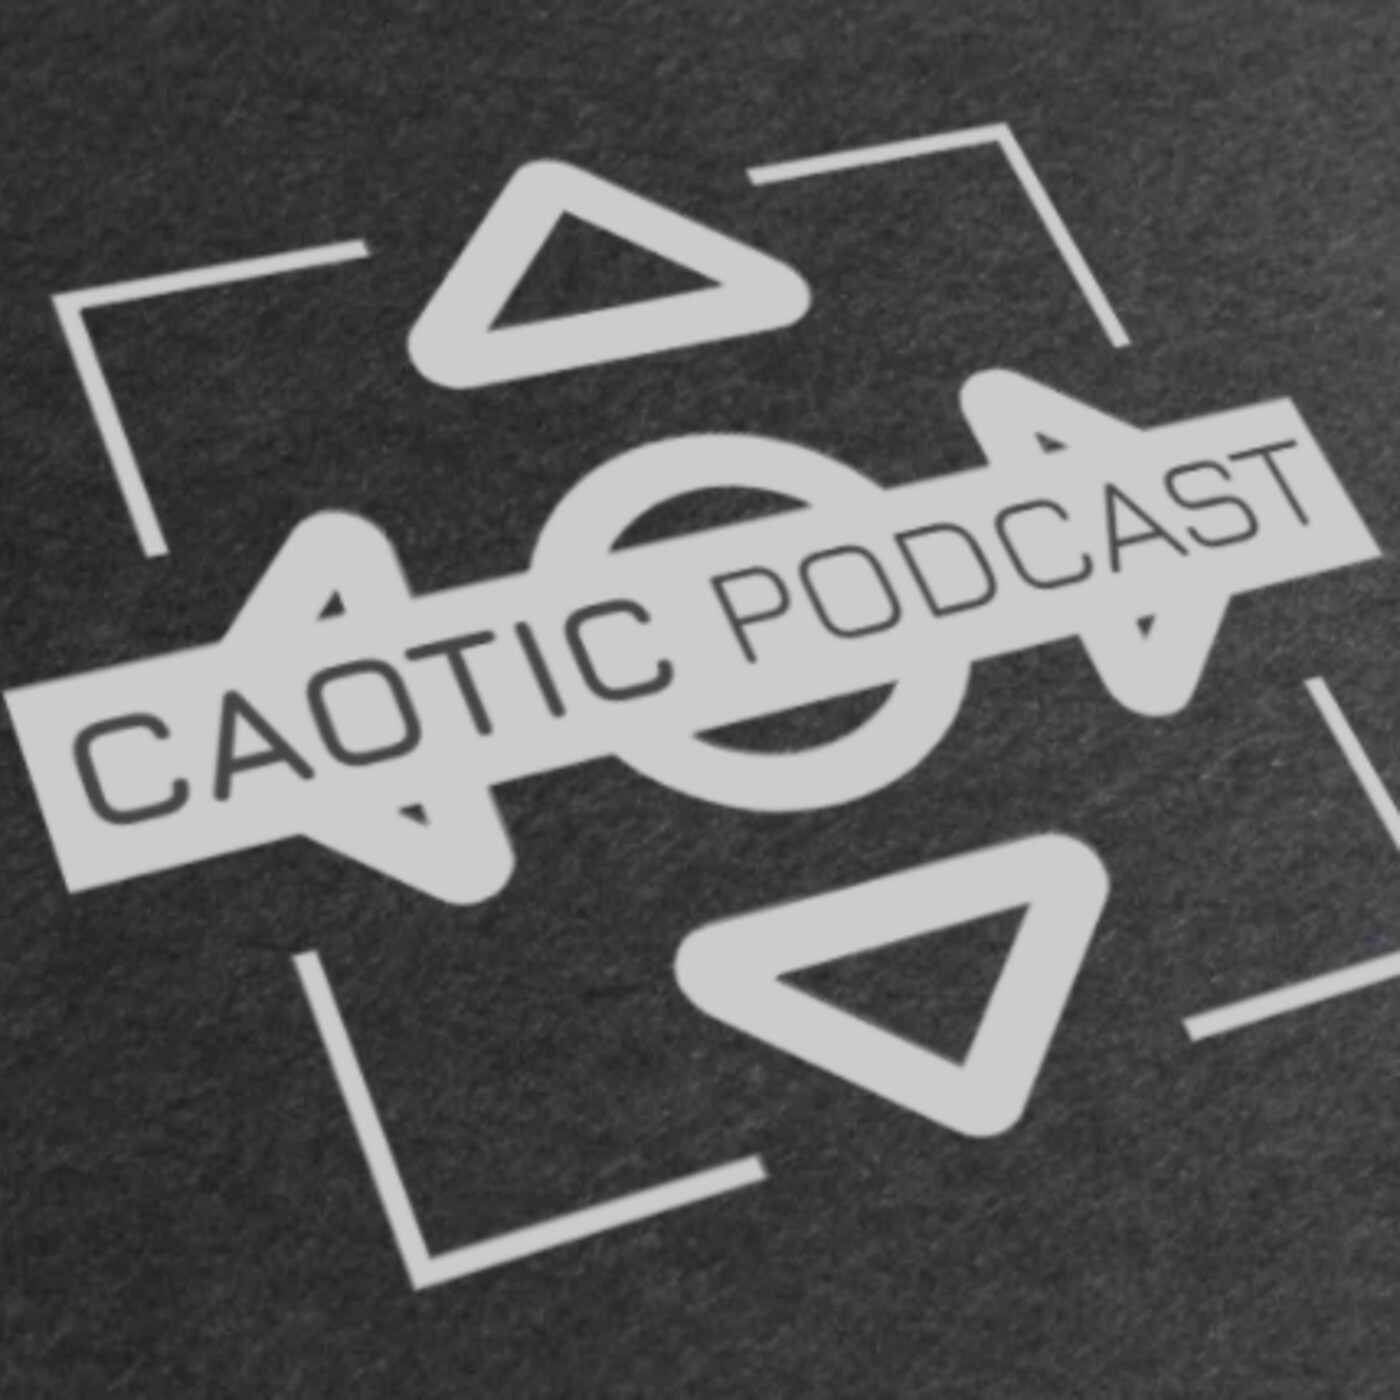 CaoticPodcast T01xE09